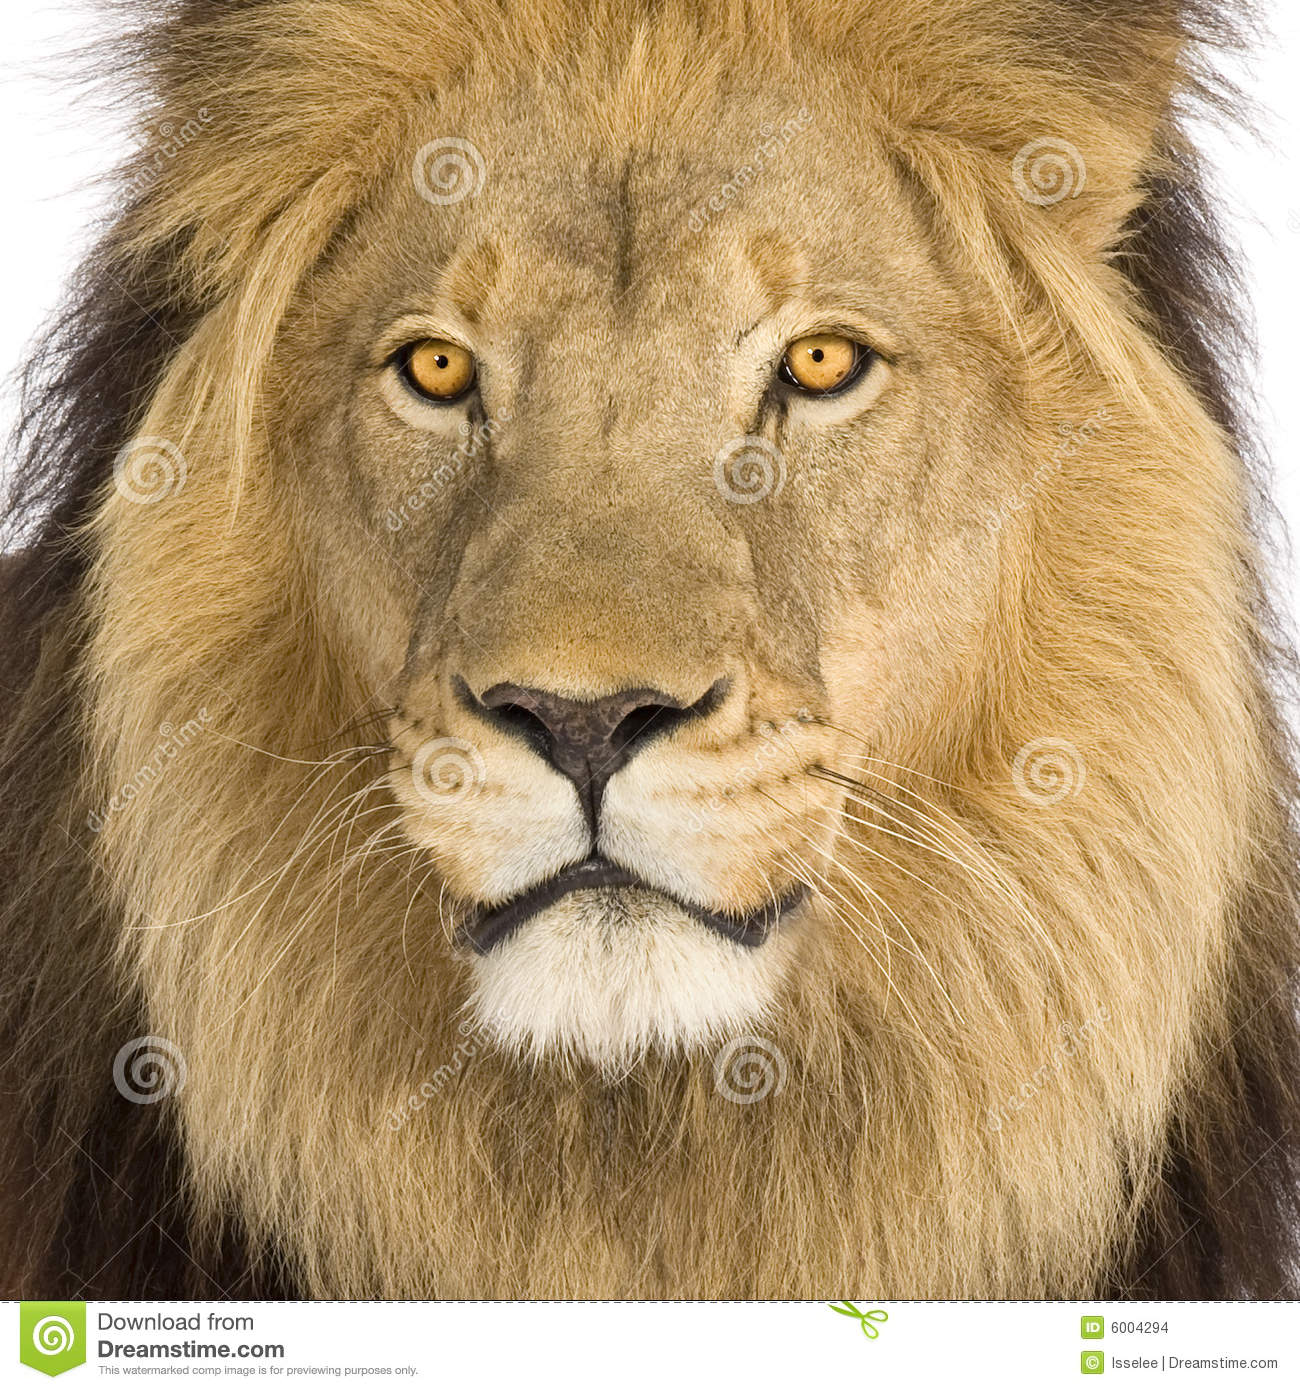 8k Animal Wallpaper Download: Close-up On A Lion's Head (8 Years)